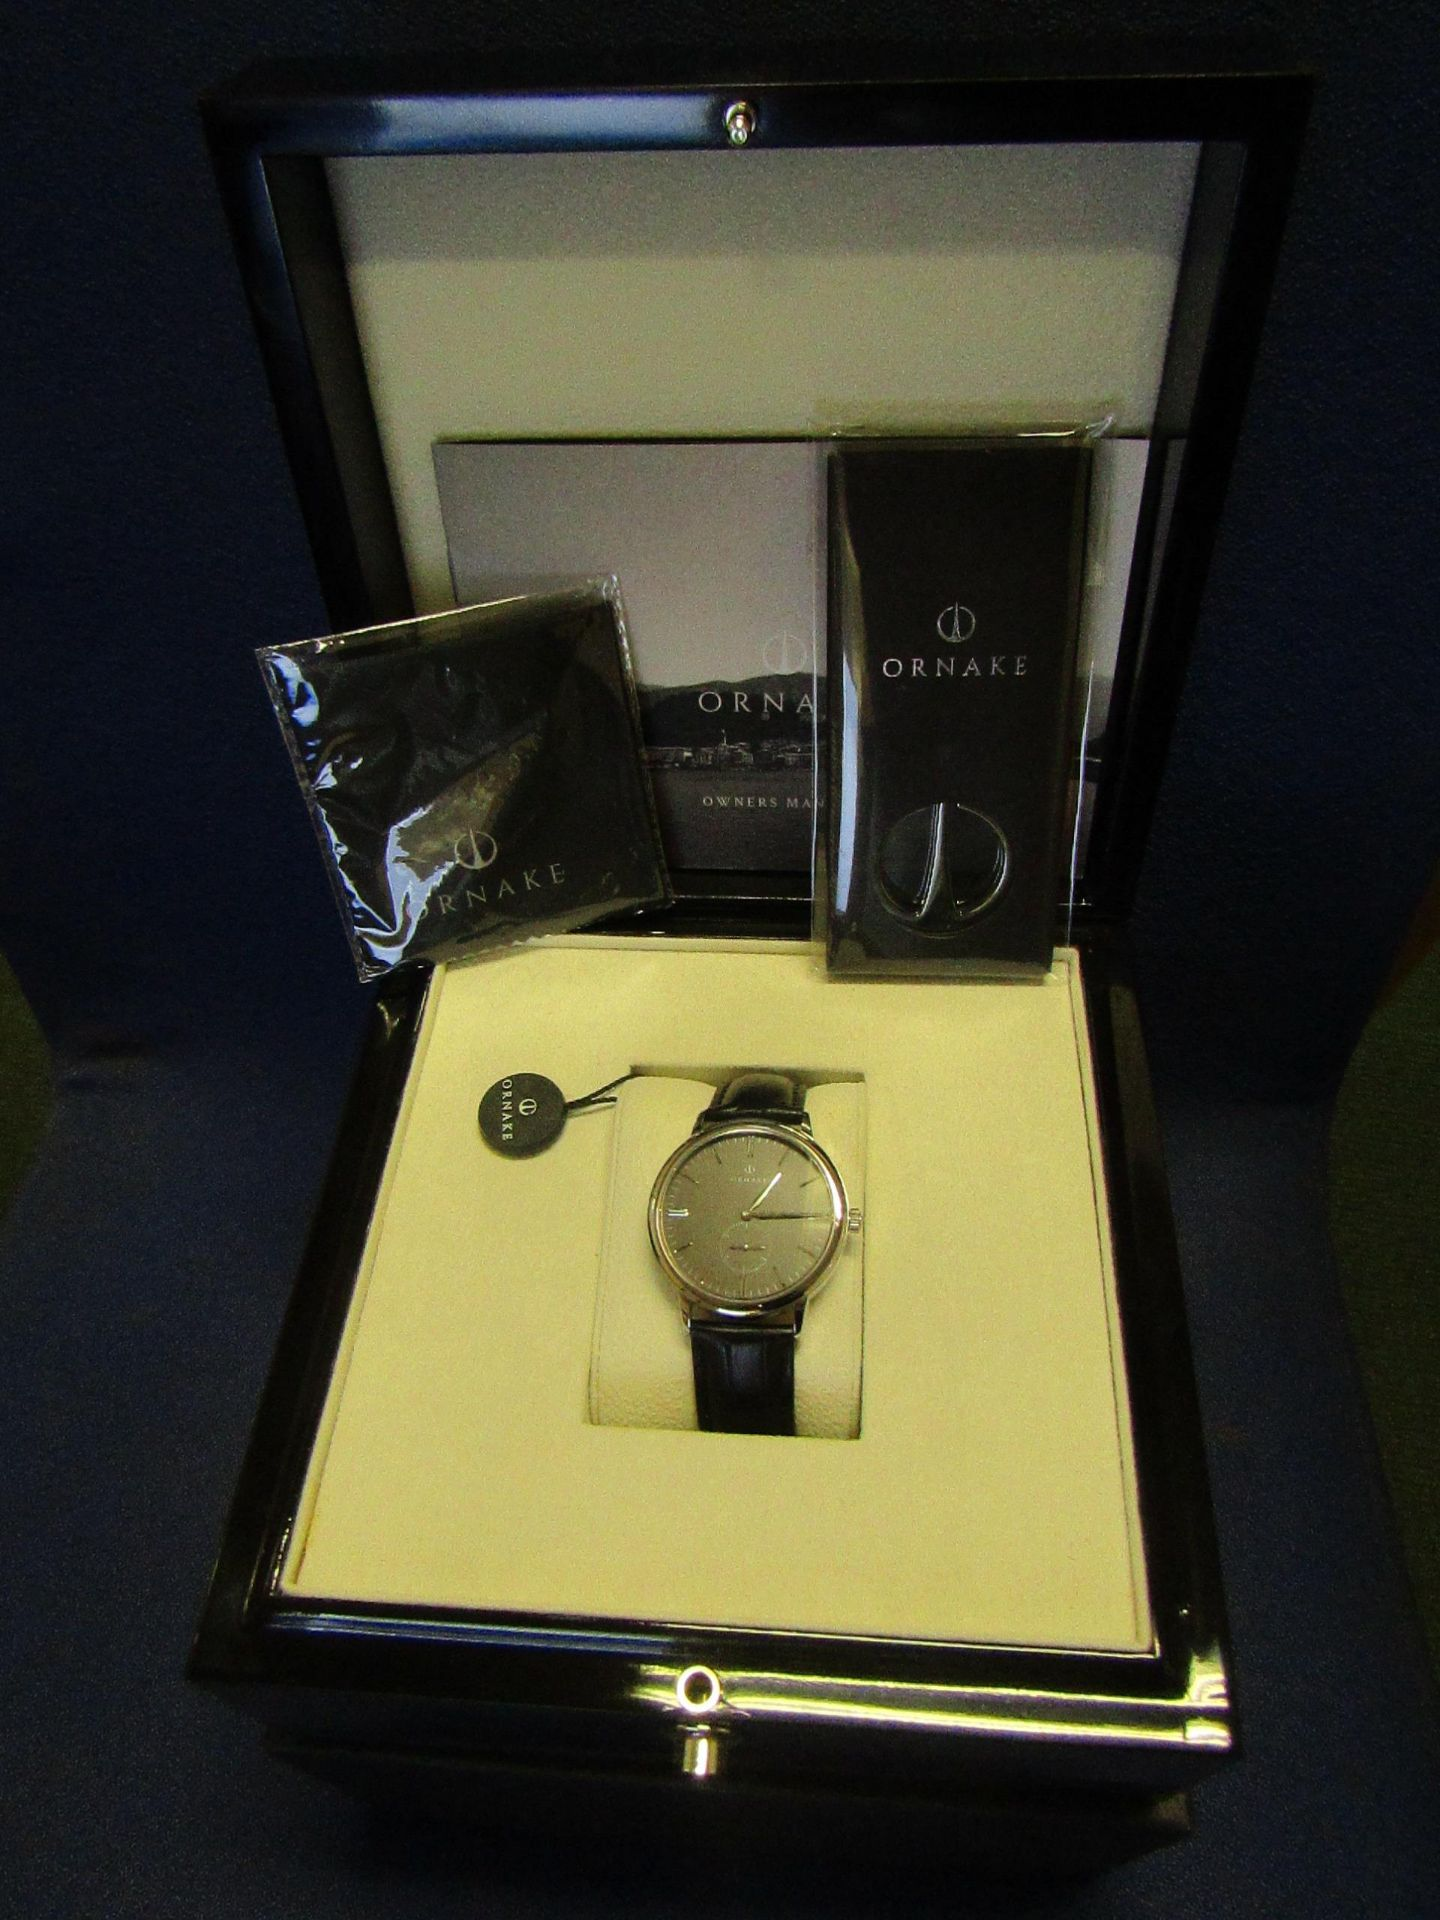 Ornake watch, miyota movement, black and Silver with black leather strap, new, Boxed and ticking.